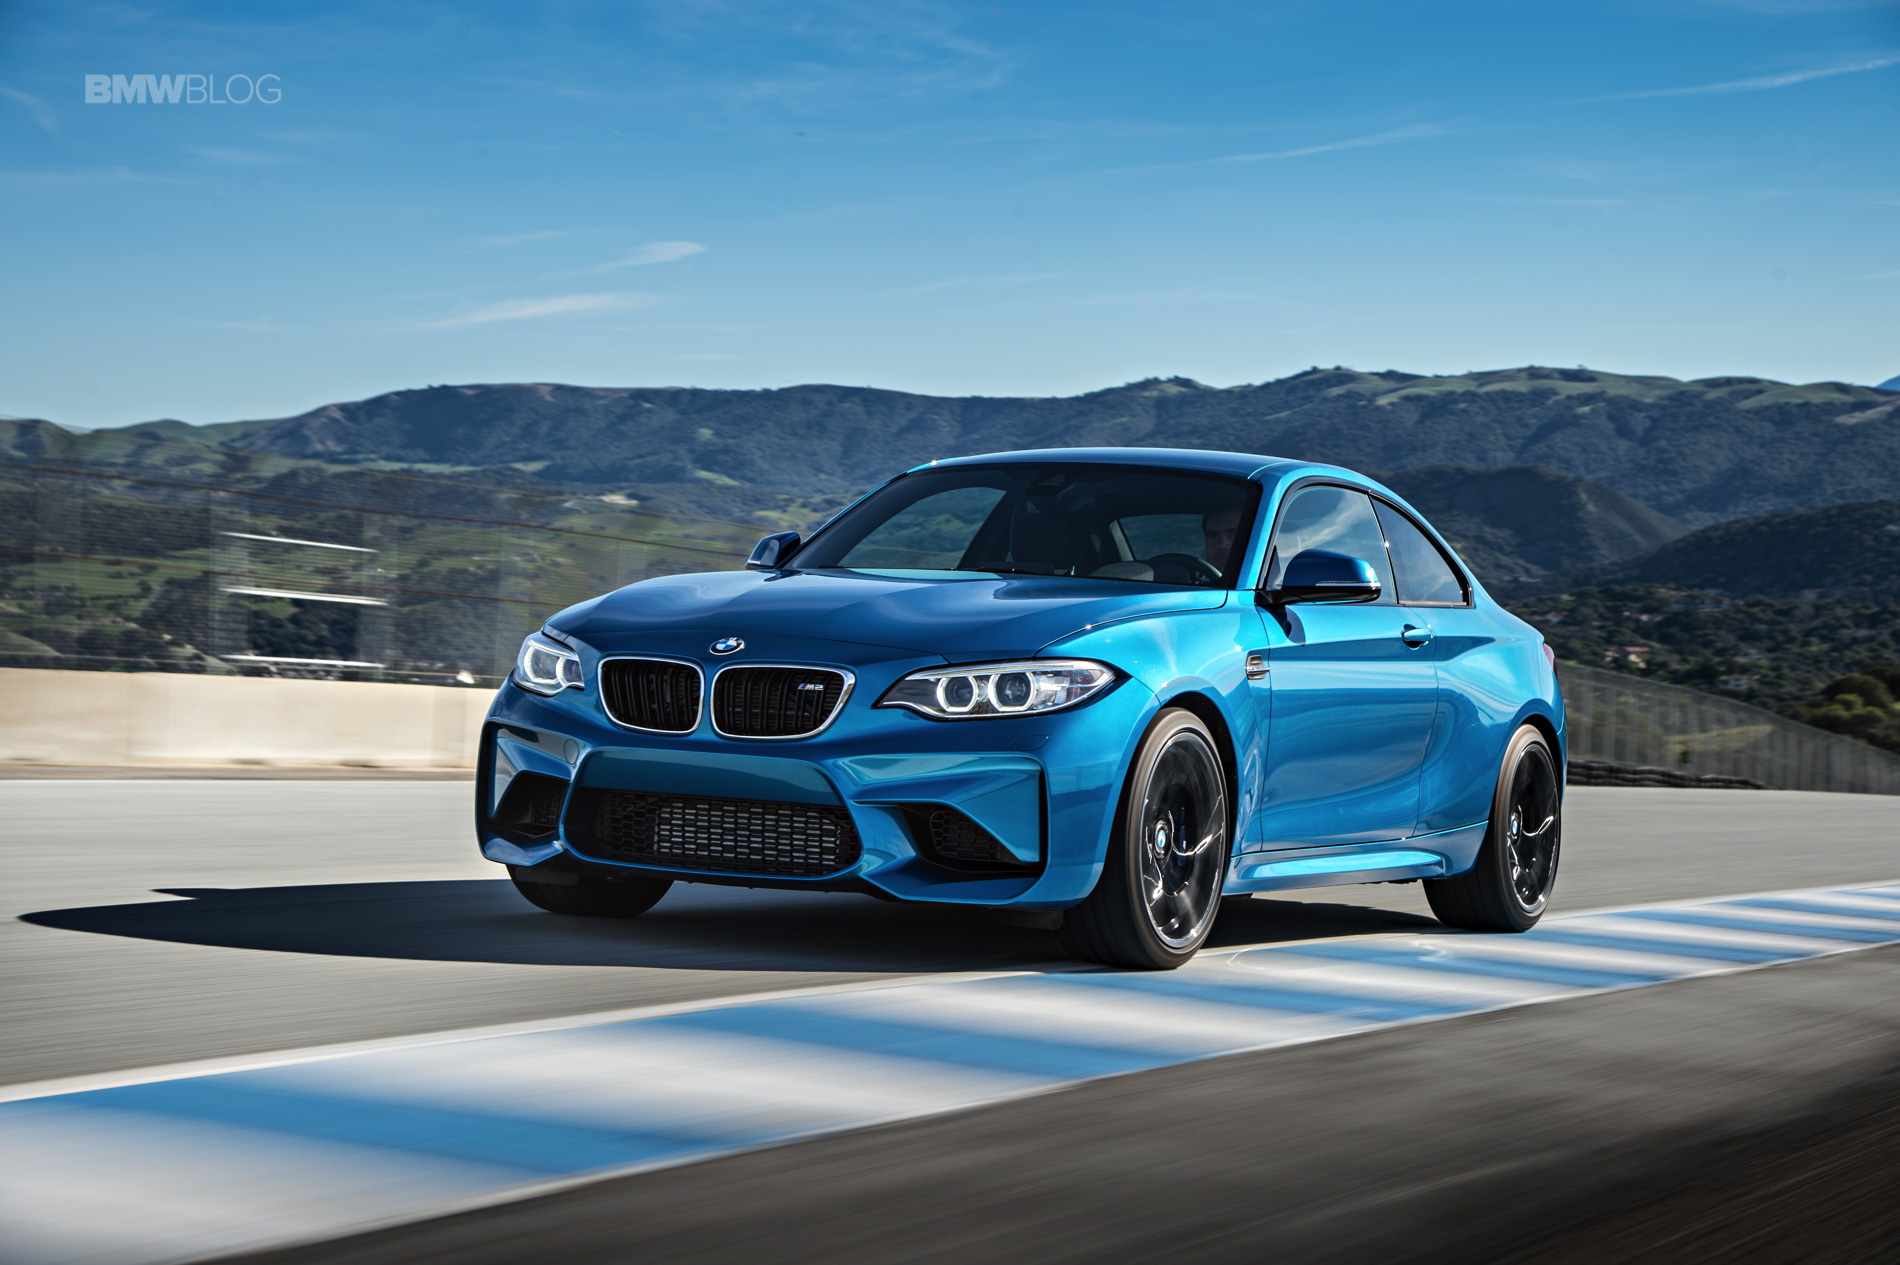 Bmw M6 Gran Coupe >> Sport auto goes back to Hockenheim with BMW M2 for a 1:12.2 lap time